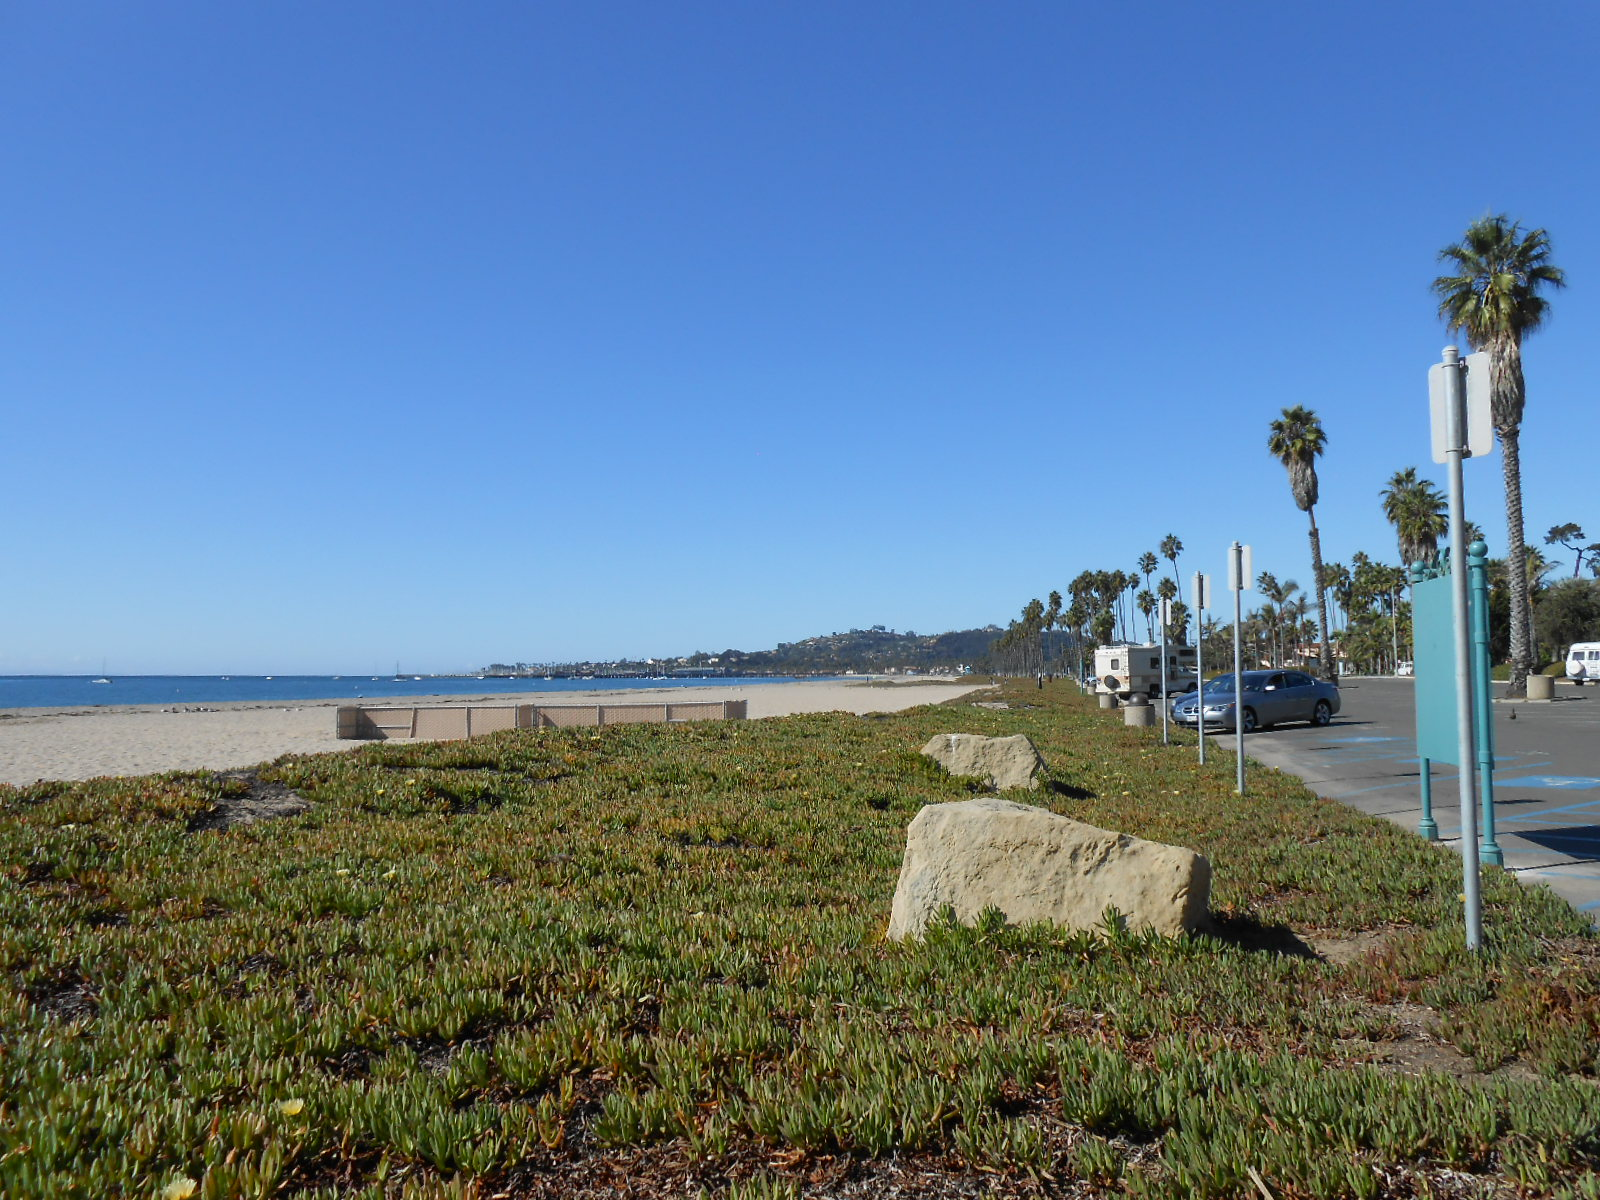 Cabrillo Boulevard Runs Along The Beach In Santa Barbara It S A Beautiful Palm Lined Promenade State Street Downtown Main Drag Ends At